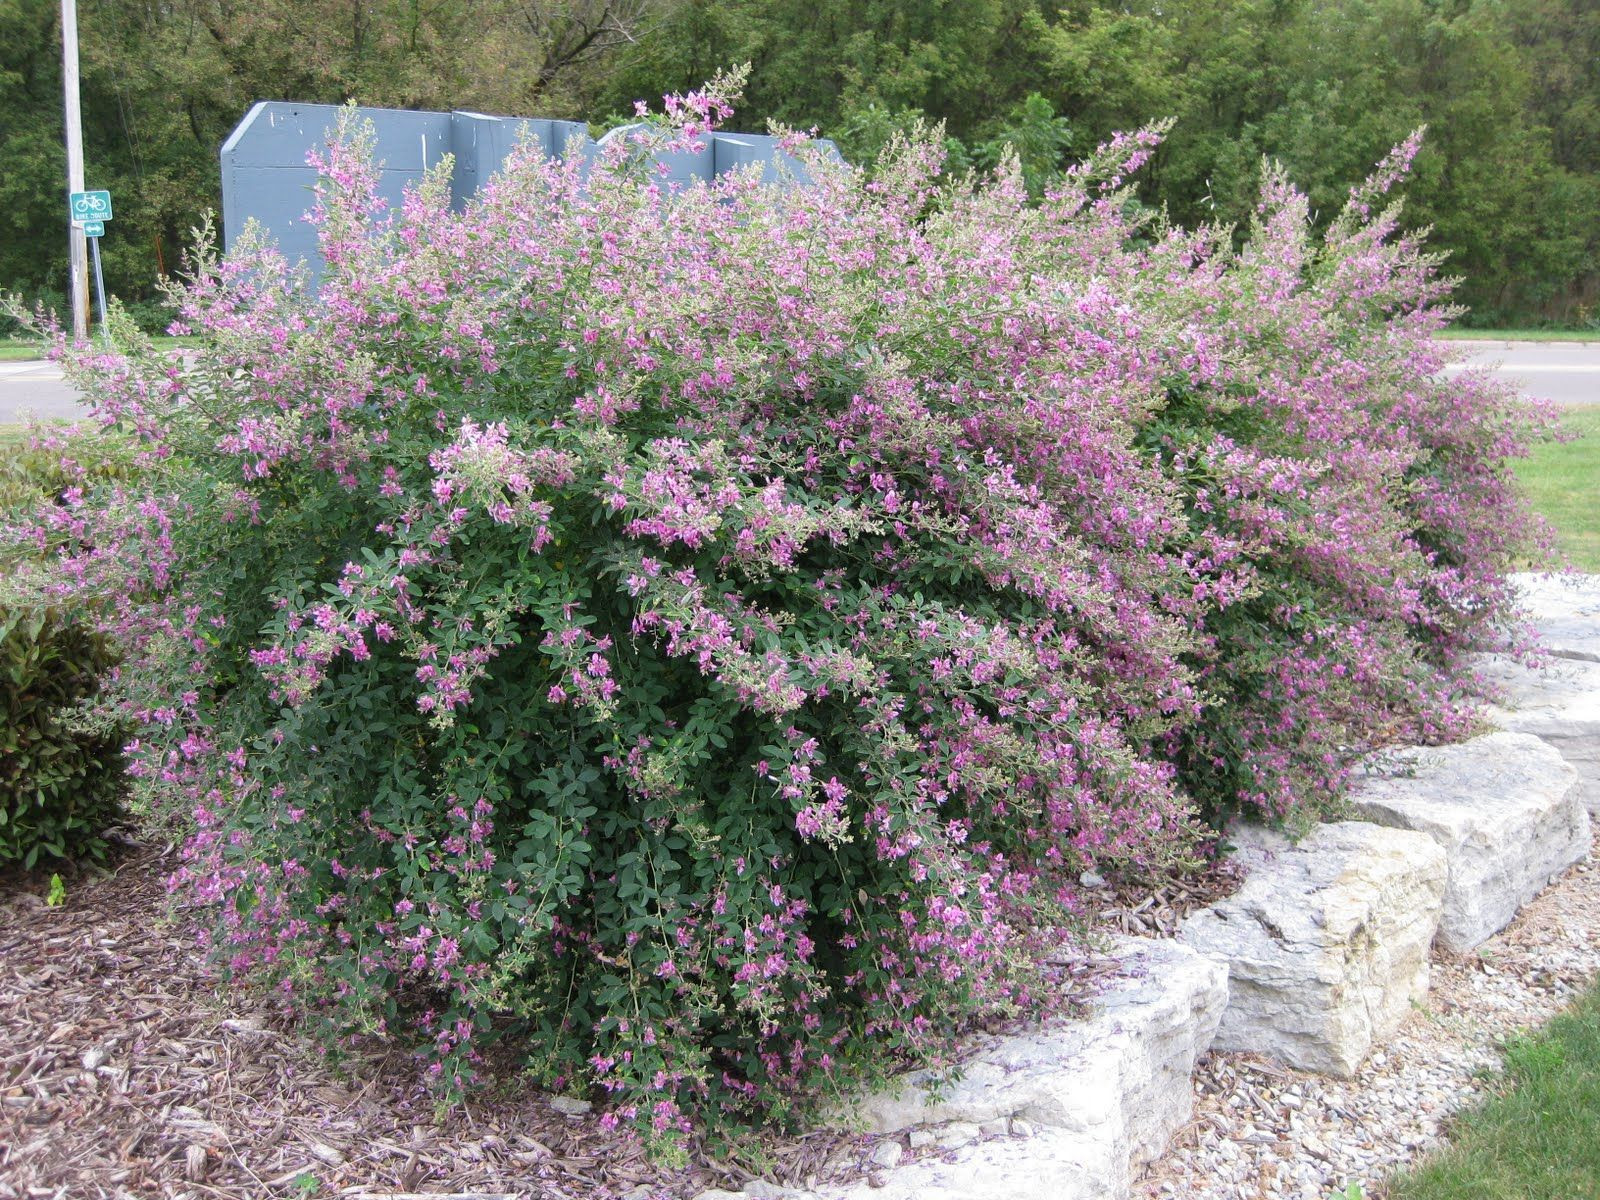 Bush Clover Gibraltar Lespedeza thumbergii 5 6 tall Blooms Aug September Sub shrub that s to the ground each year